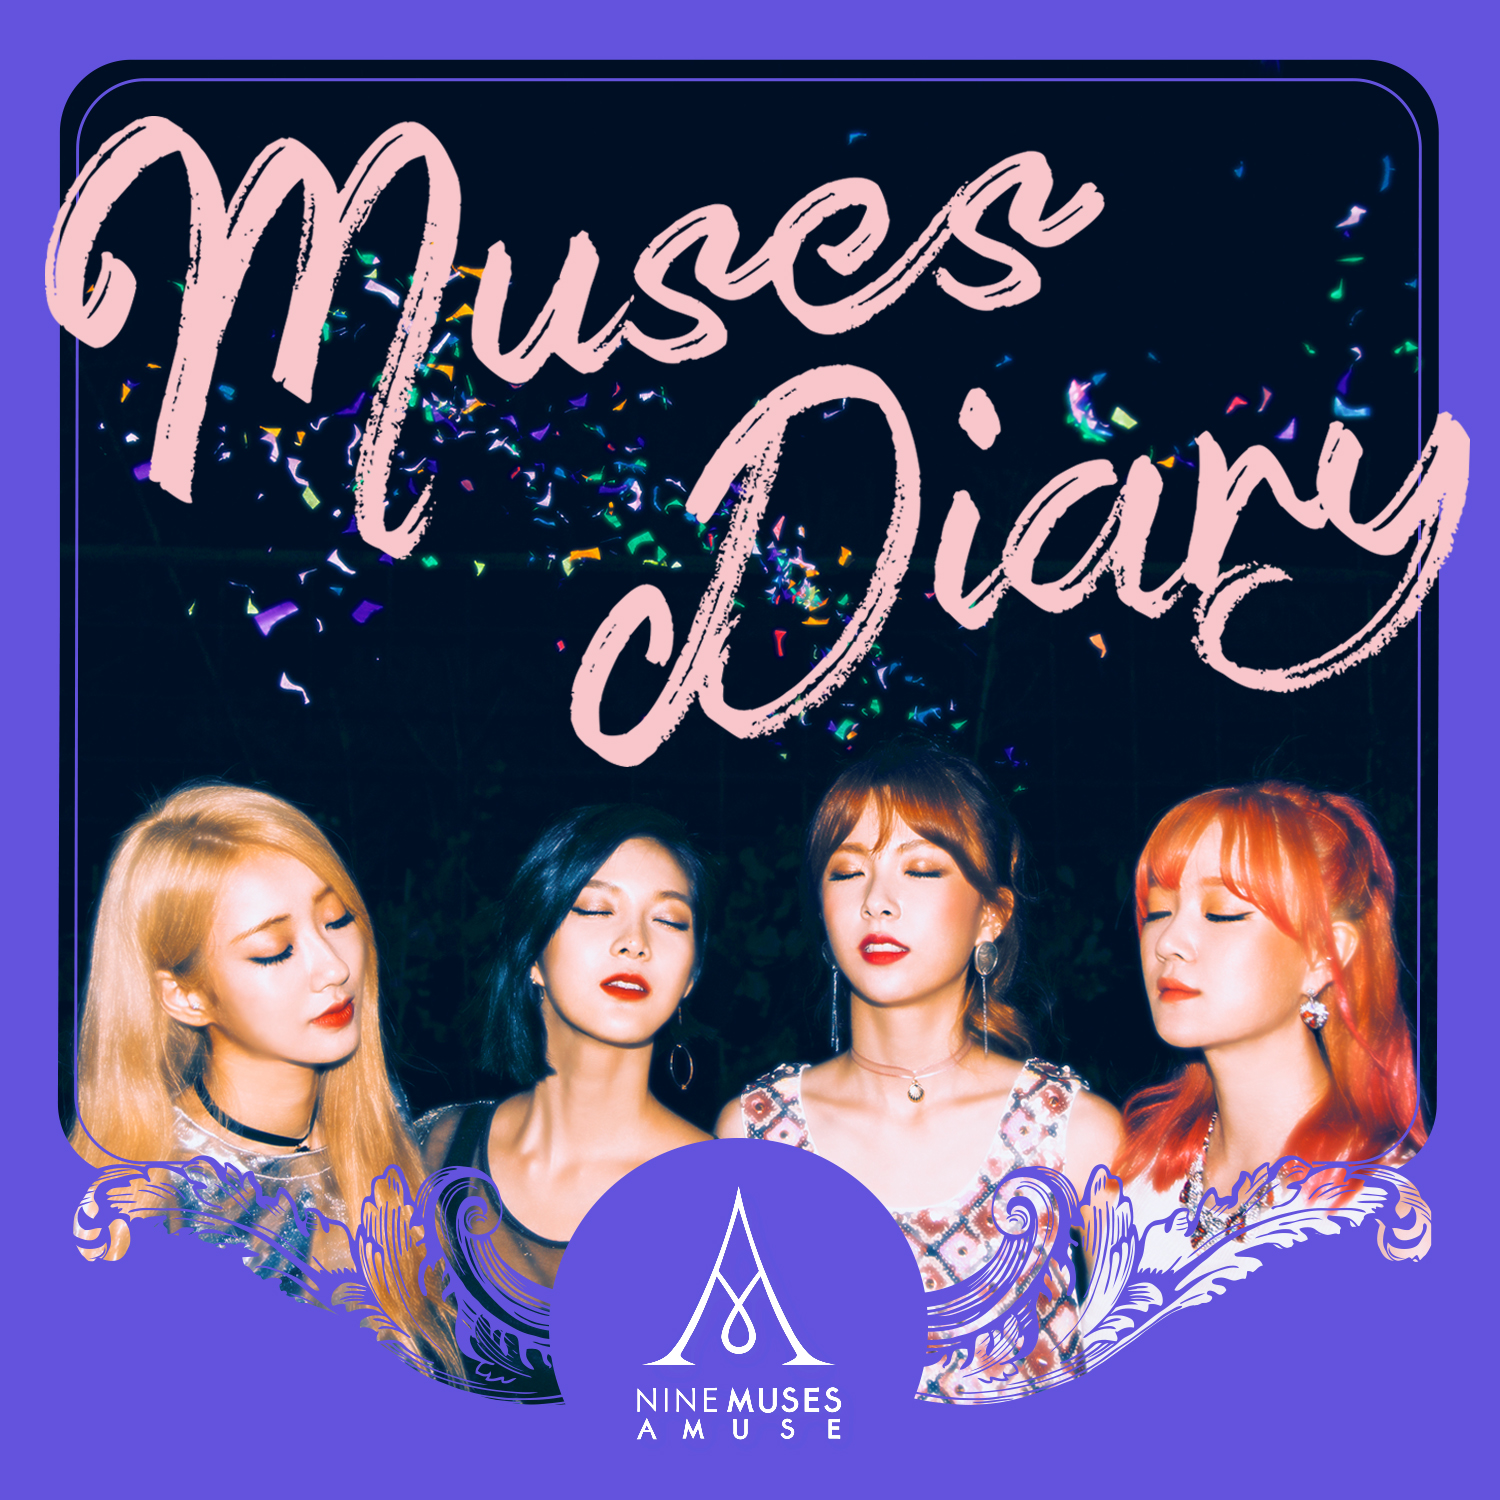 20160807.02.15 Nine Muses A - Muses Diary cover.jpg